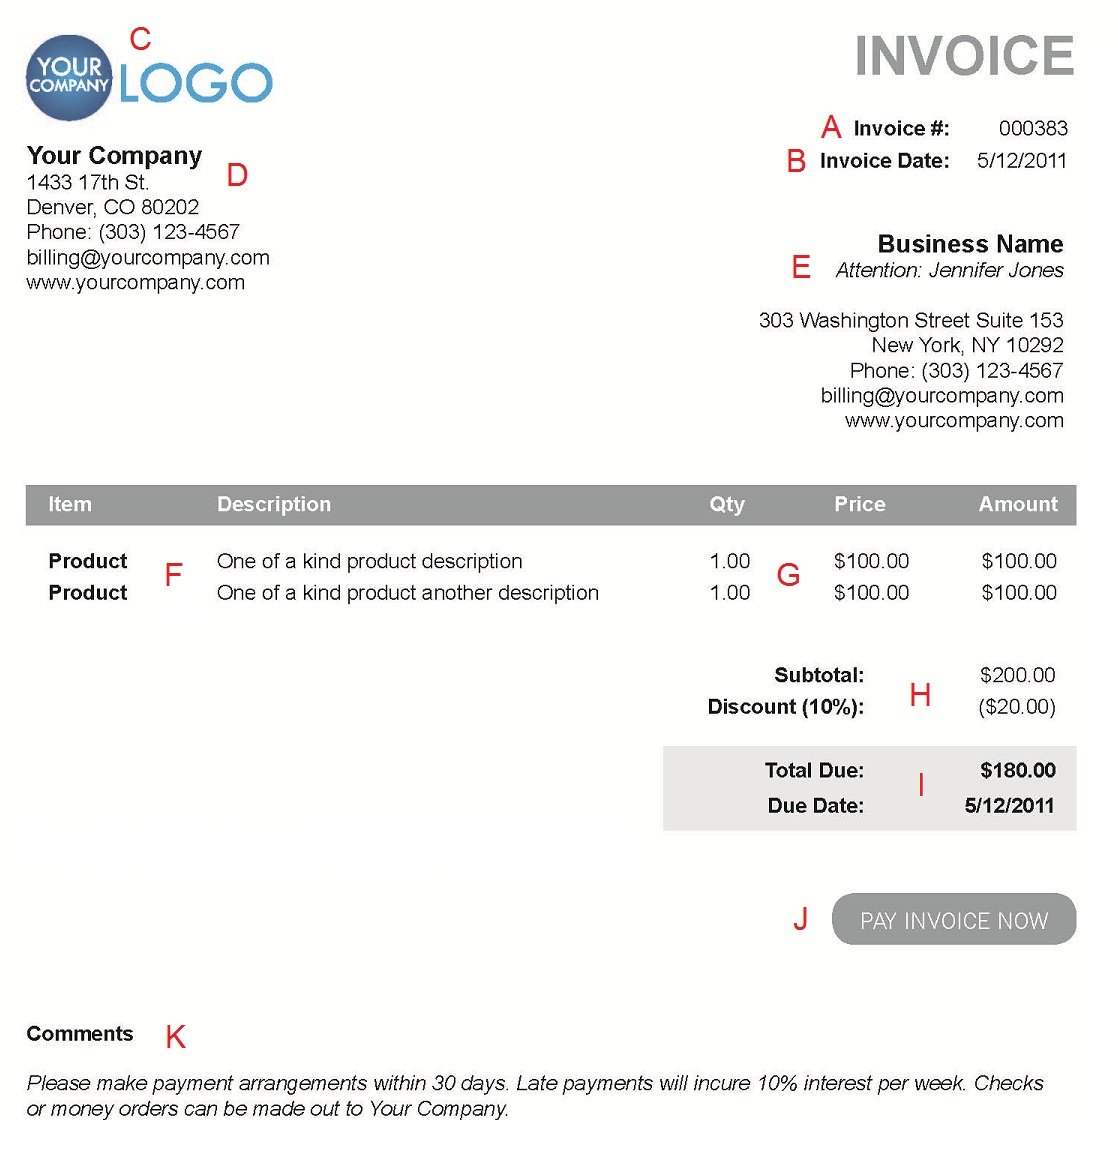 Coolmathgamesus  Marvellous The  Different Sections Of An Electronic Payment Invoice With Outstanding A  With Delightful Electronic Ticket Receipt Also Tax Refund Receipt In Addition Cash Receipt Format In Word And Receipt Rent Payment As Well As Formal Receipt Template Additionally Deposit Receipt Template Free From Paysimplecom With Coolmathgamesus  Outstanding The  Different Sections Of An Electronic Payment Invoice With Delightful A  And Marvellous Electronic Ticket Receipt Also Tax Refund Receipt In Addition Cash Receipt Format In Word From Paysimplecom